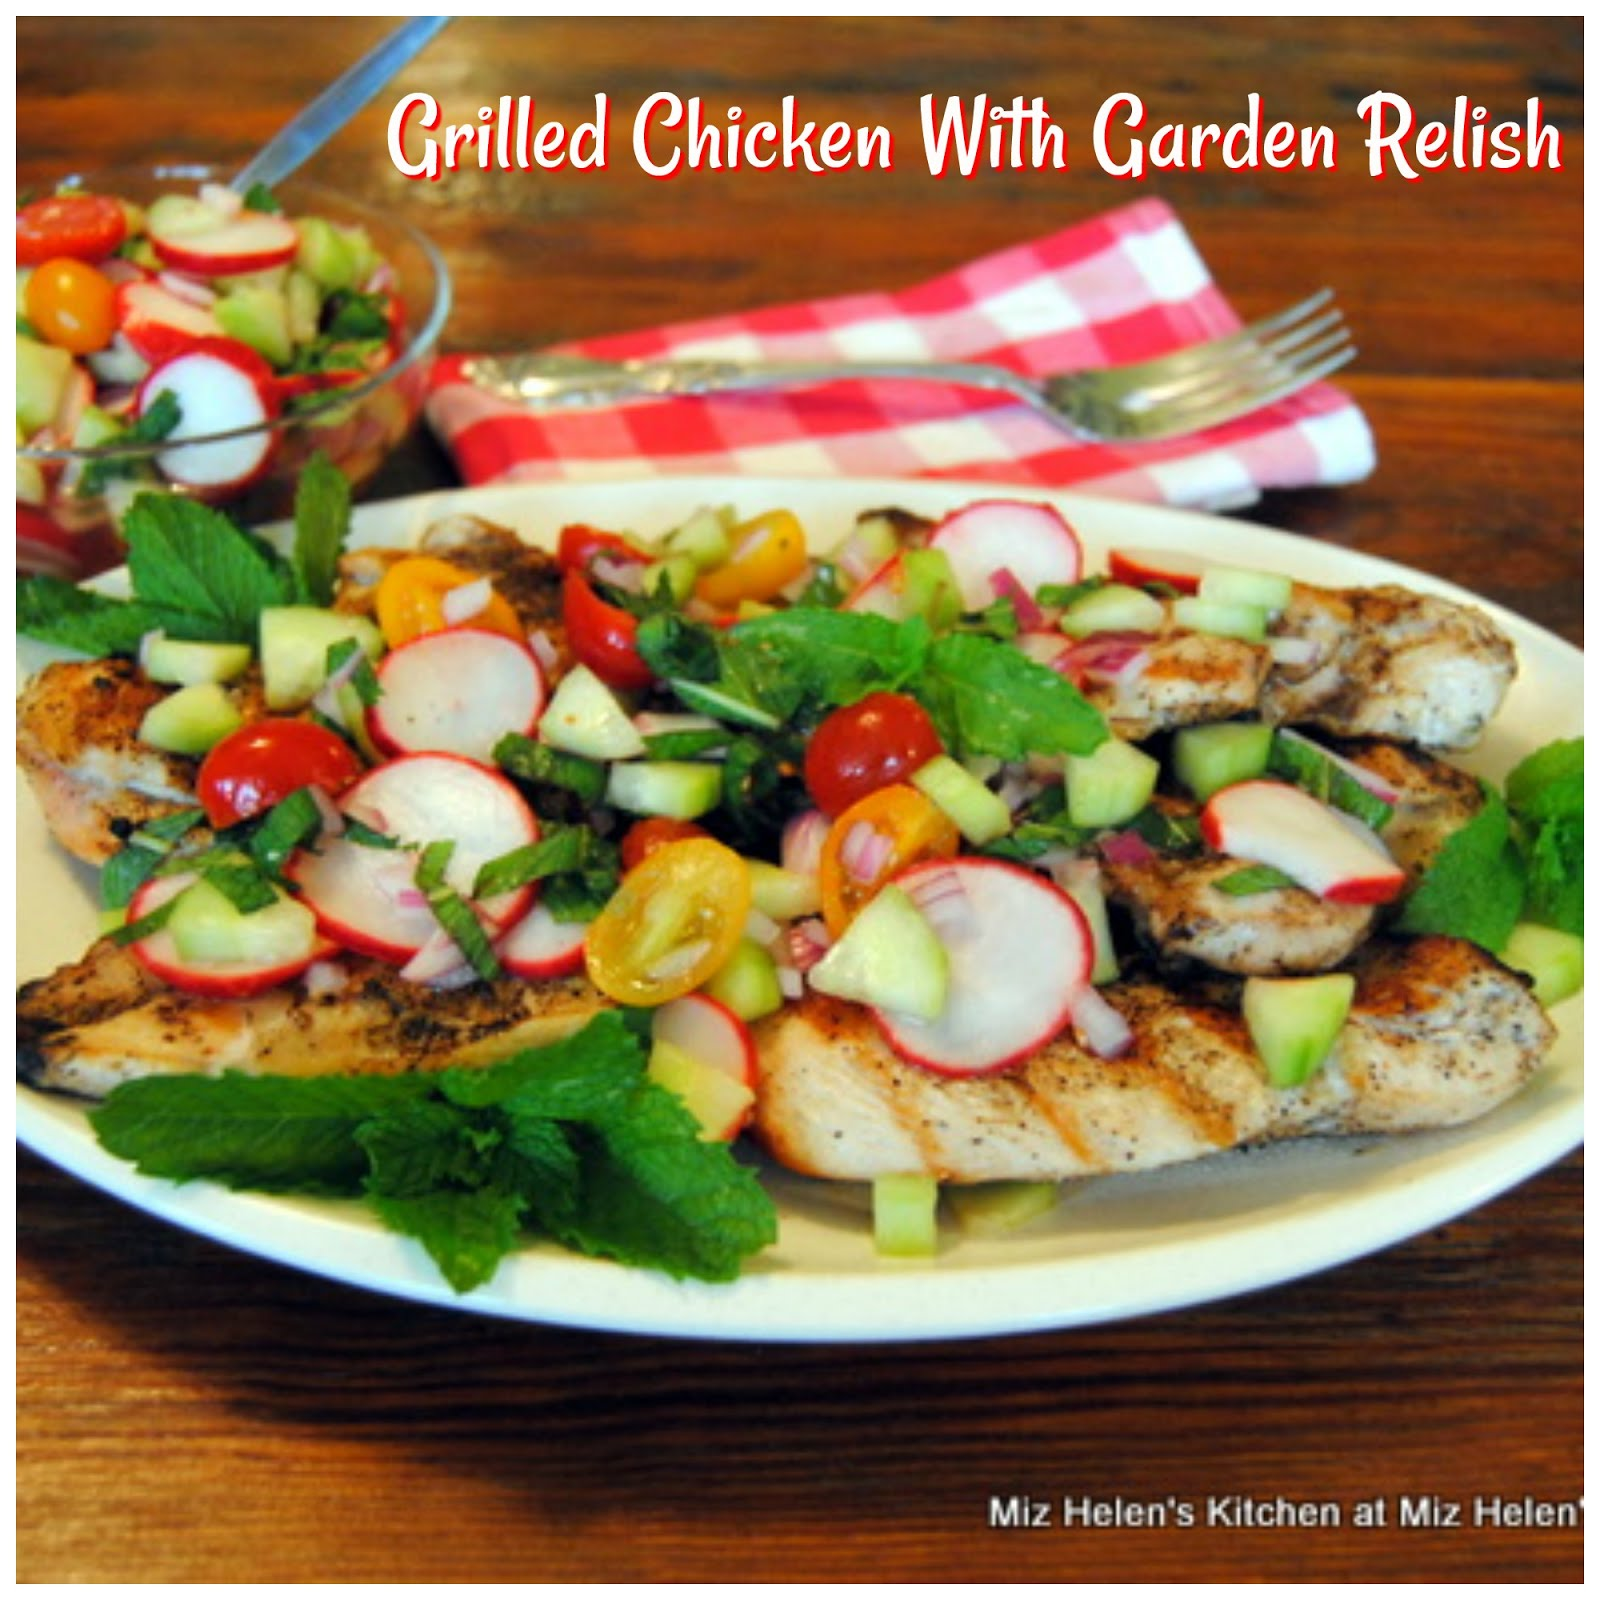 Grilled Chicken With Garden Relish